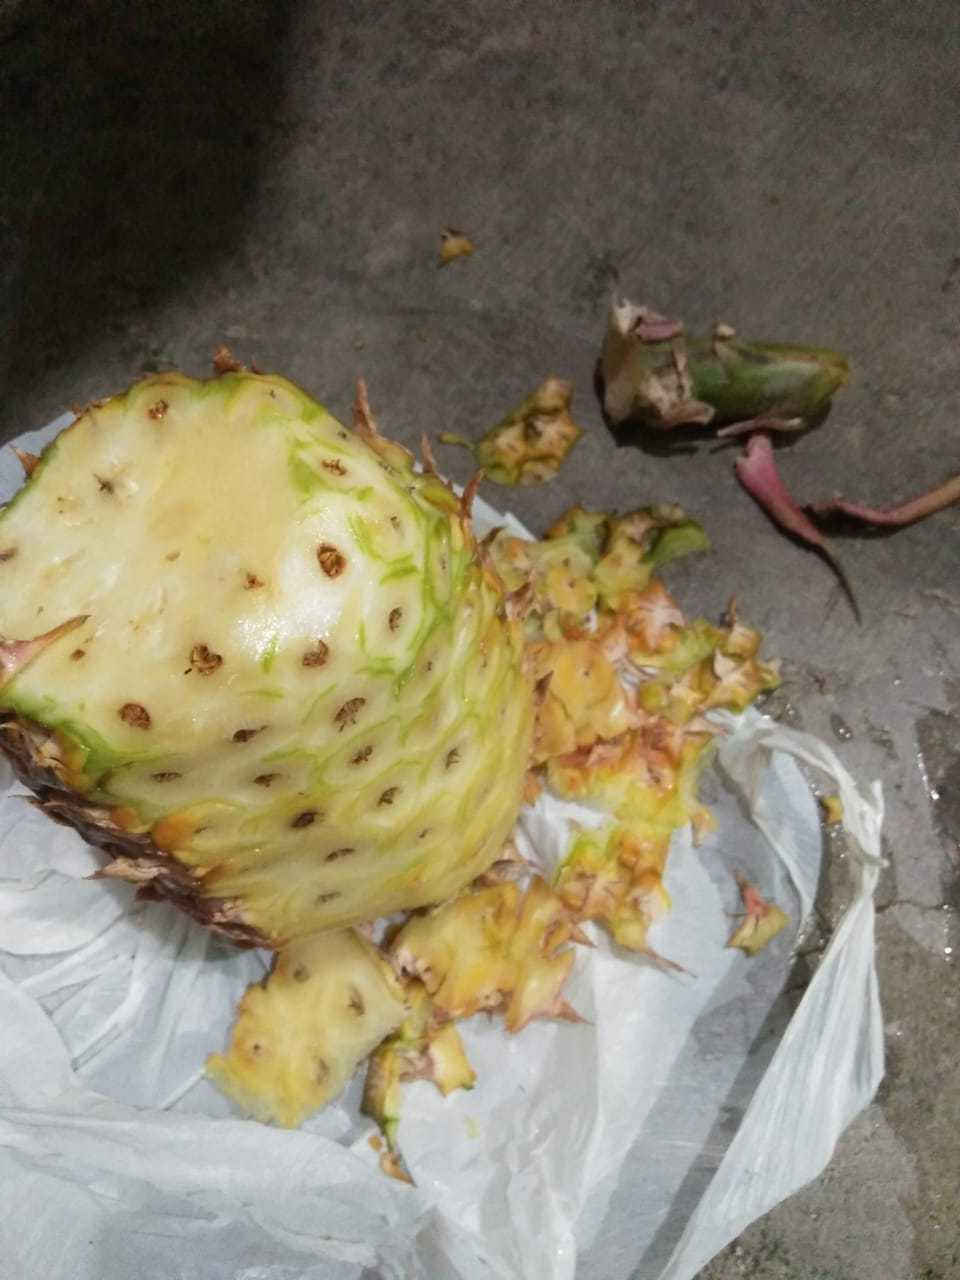 How to Make Picled Pineapple